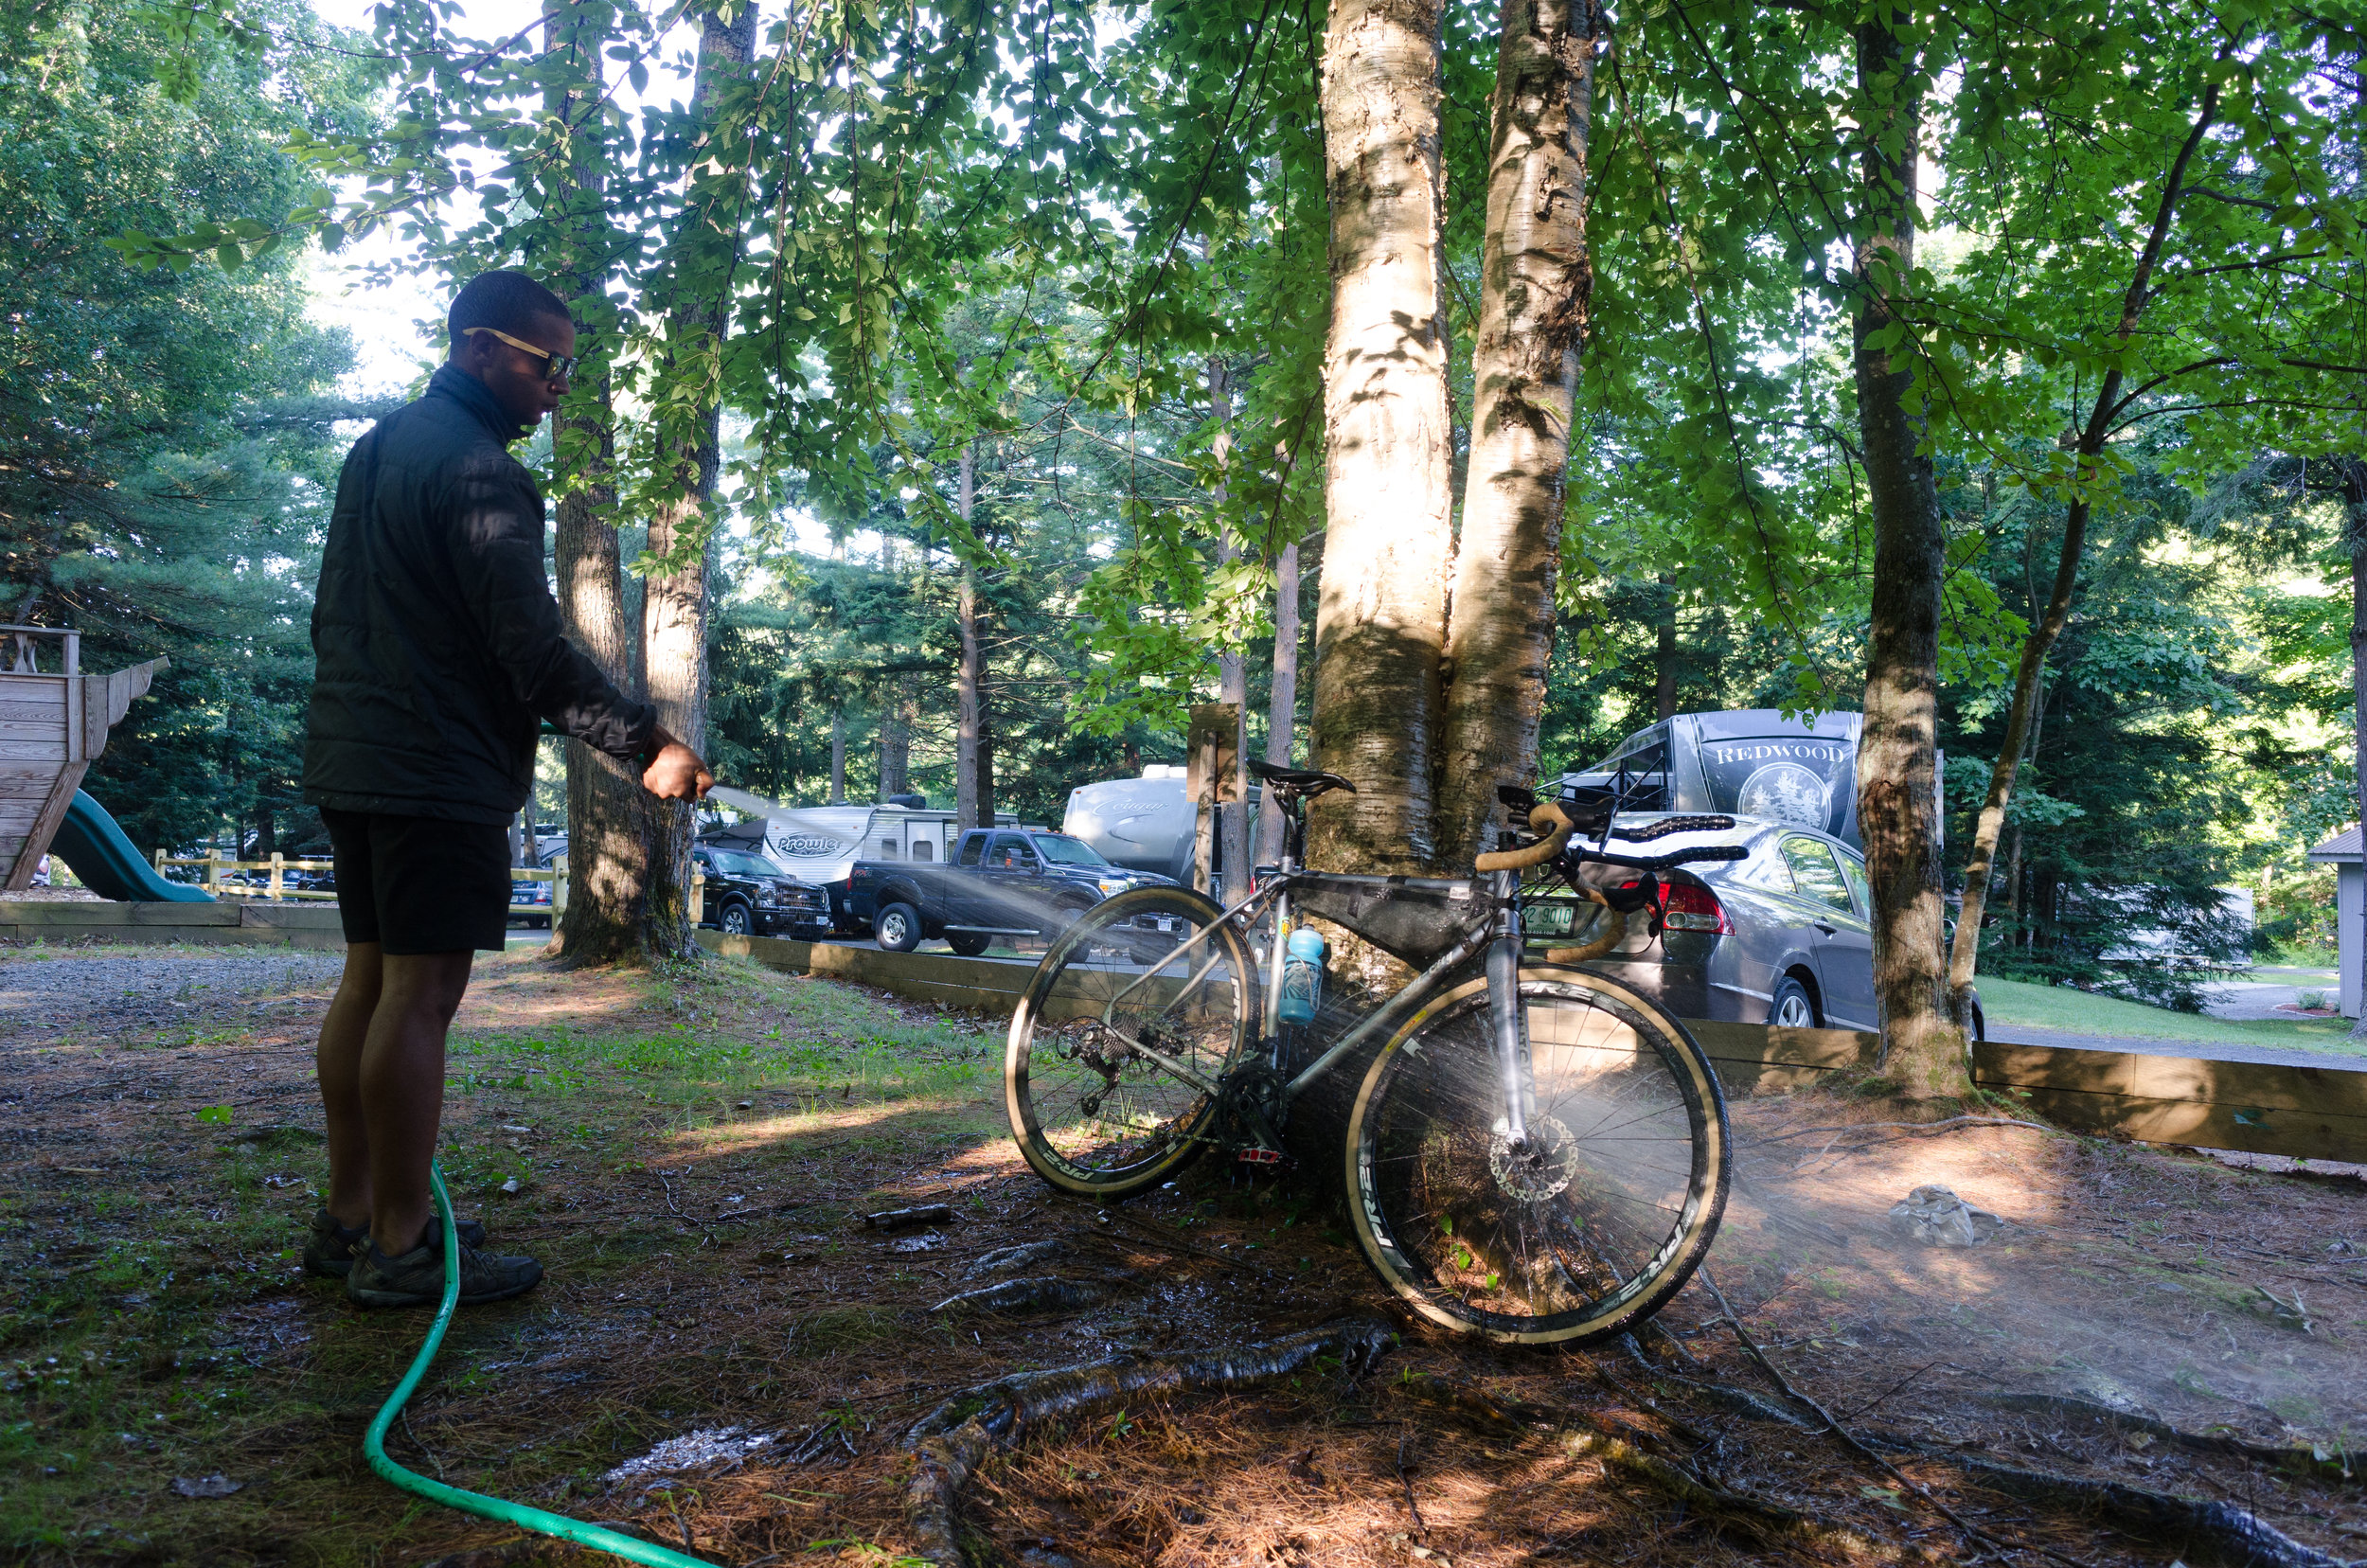 After a night by the fire it was time to rinse yesterday's road debris from our bikes and hit the road again.